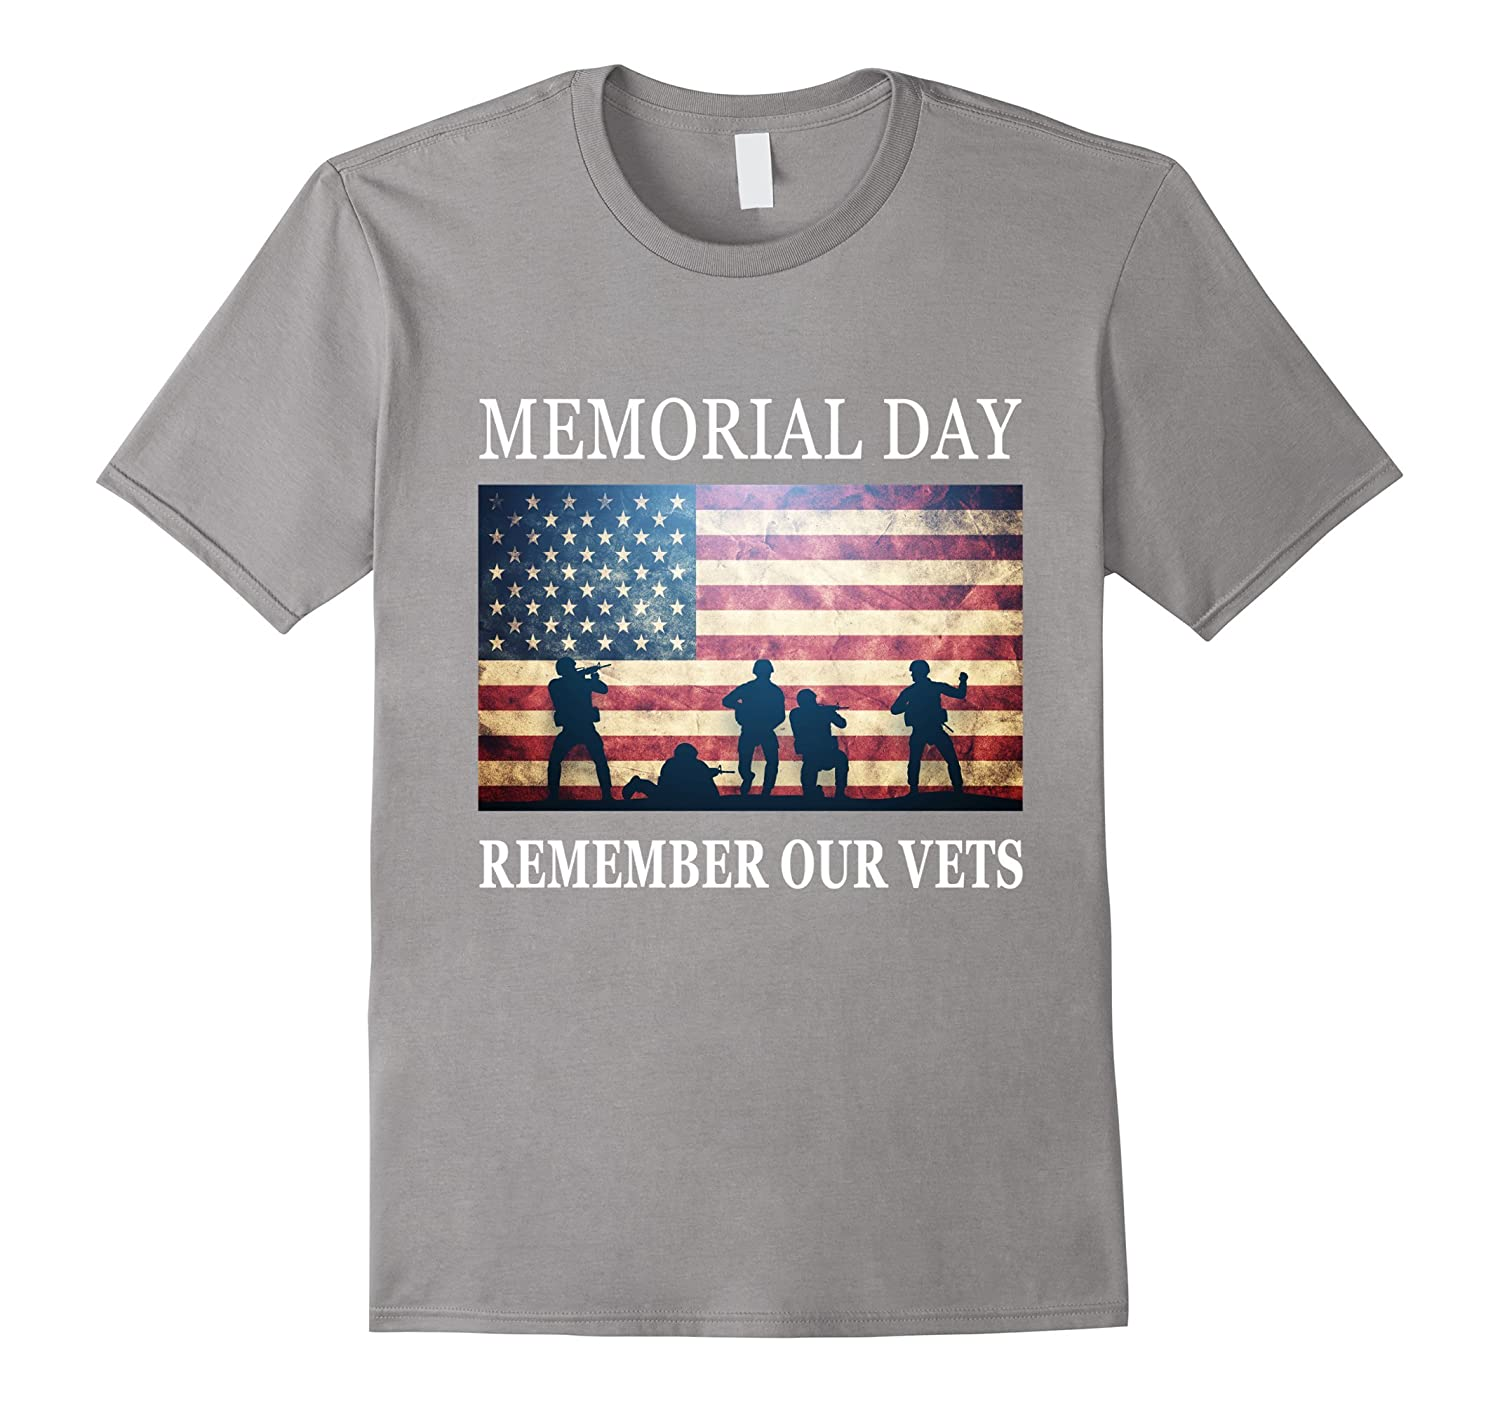 Remember Our Vets - Soldiers Military Memorial Day T-Shirt-Art